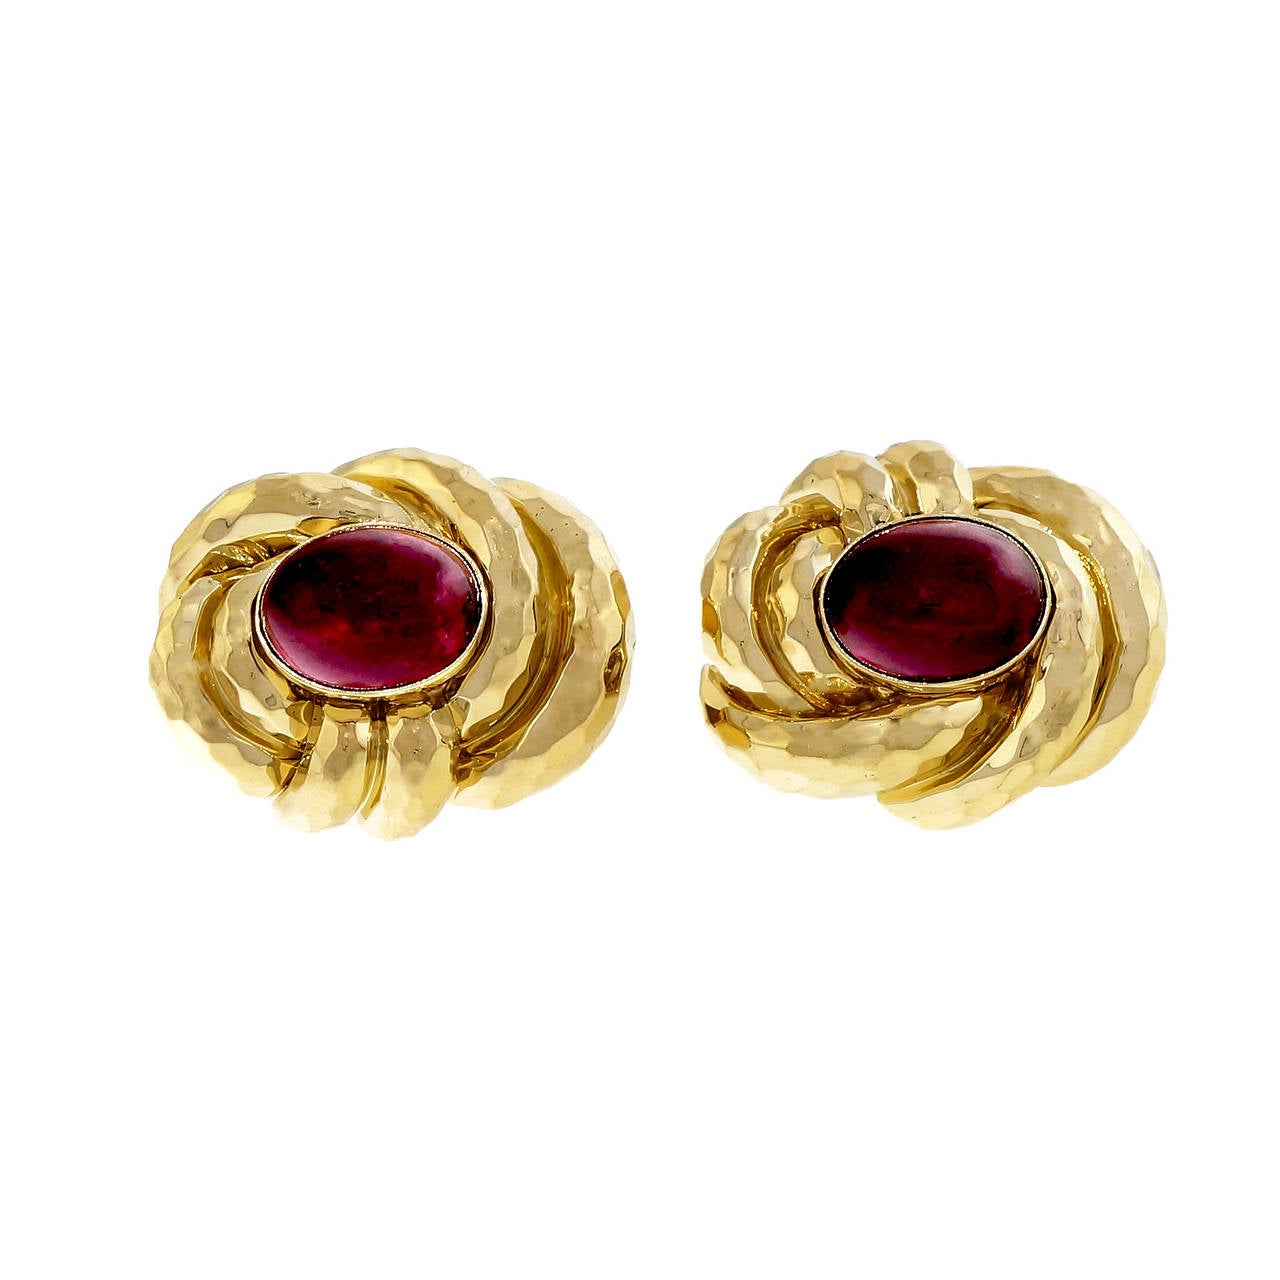 Henry Dunay Pink Tourmaline Rubellite Hammered Gold Earrings In Good Condition For Sale In Stamford, CT